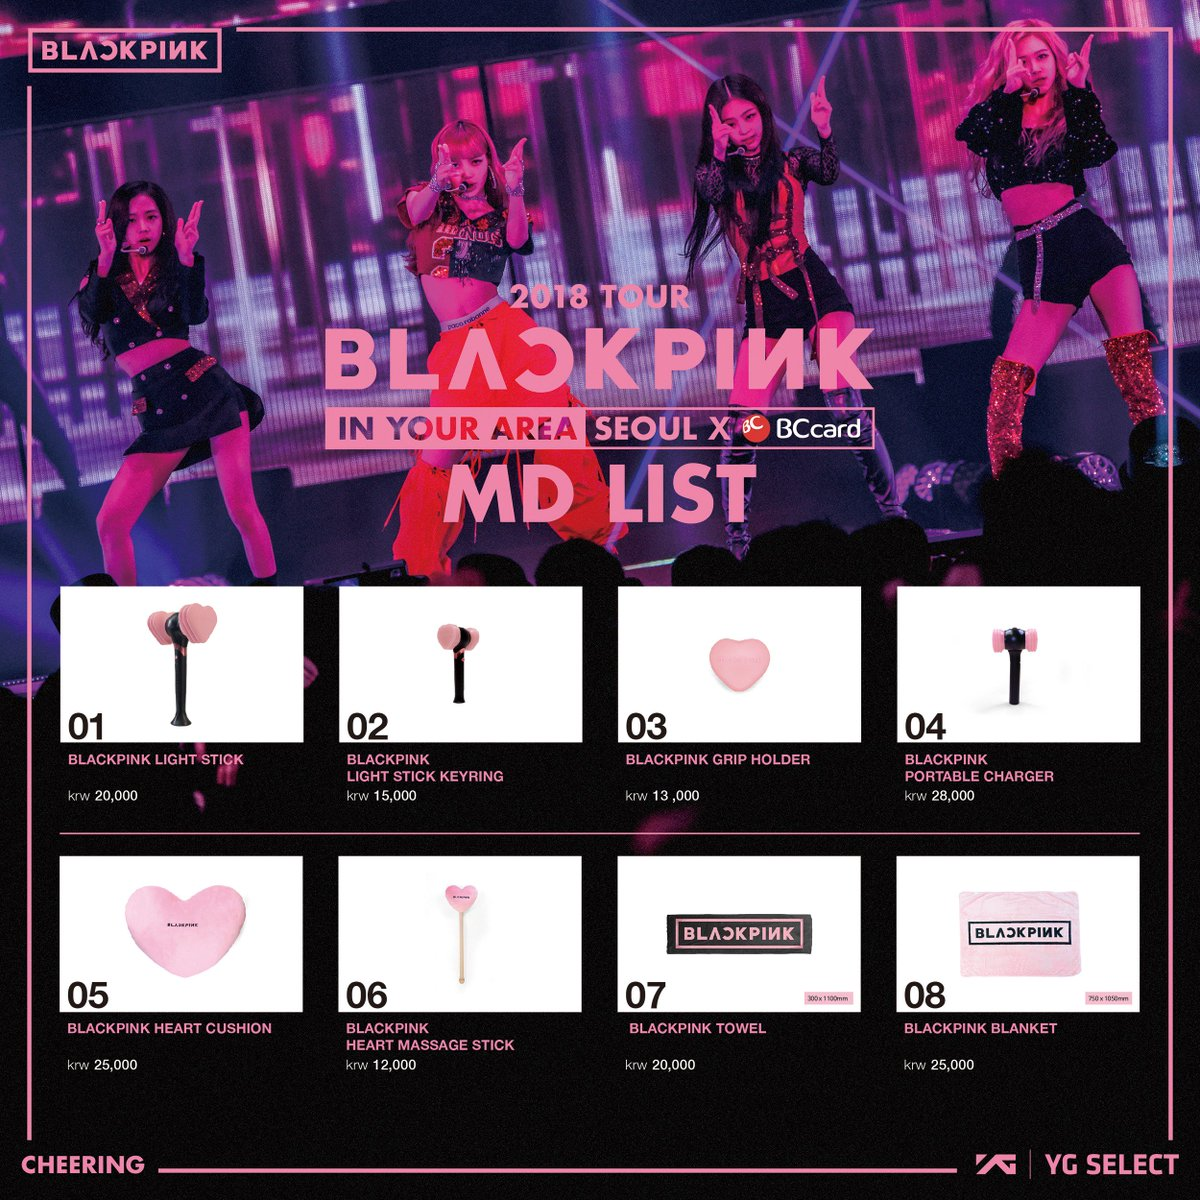 Yg Family On Twitter Blackpink 2018 Tour In Your Area Seoul Md